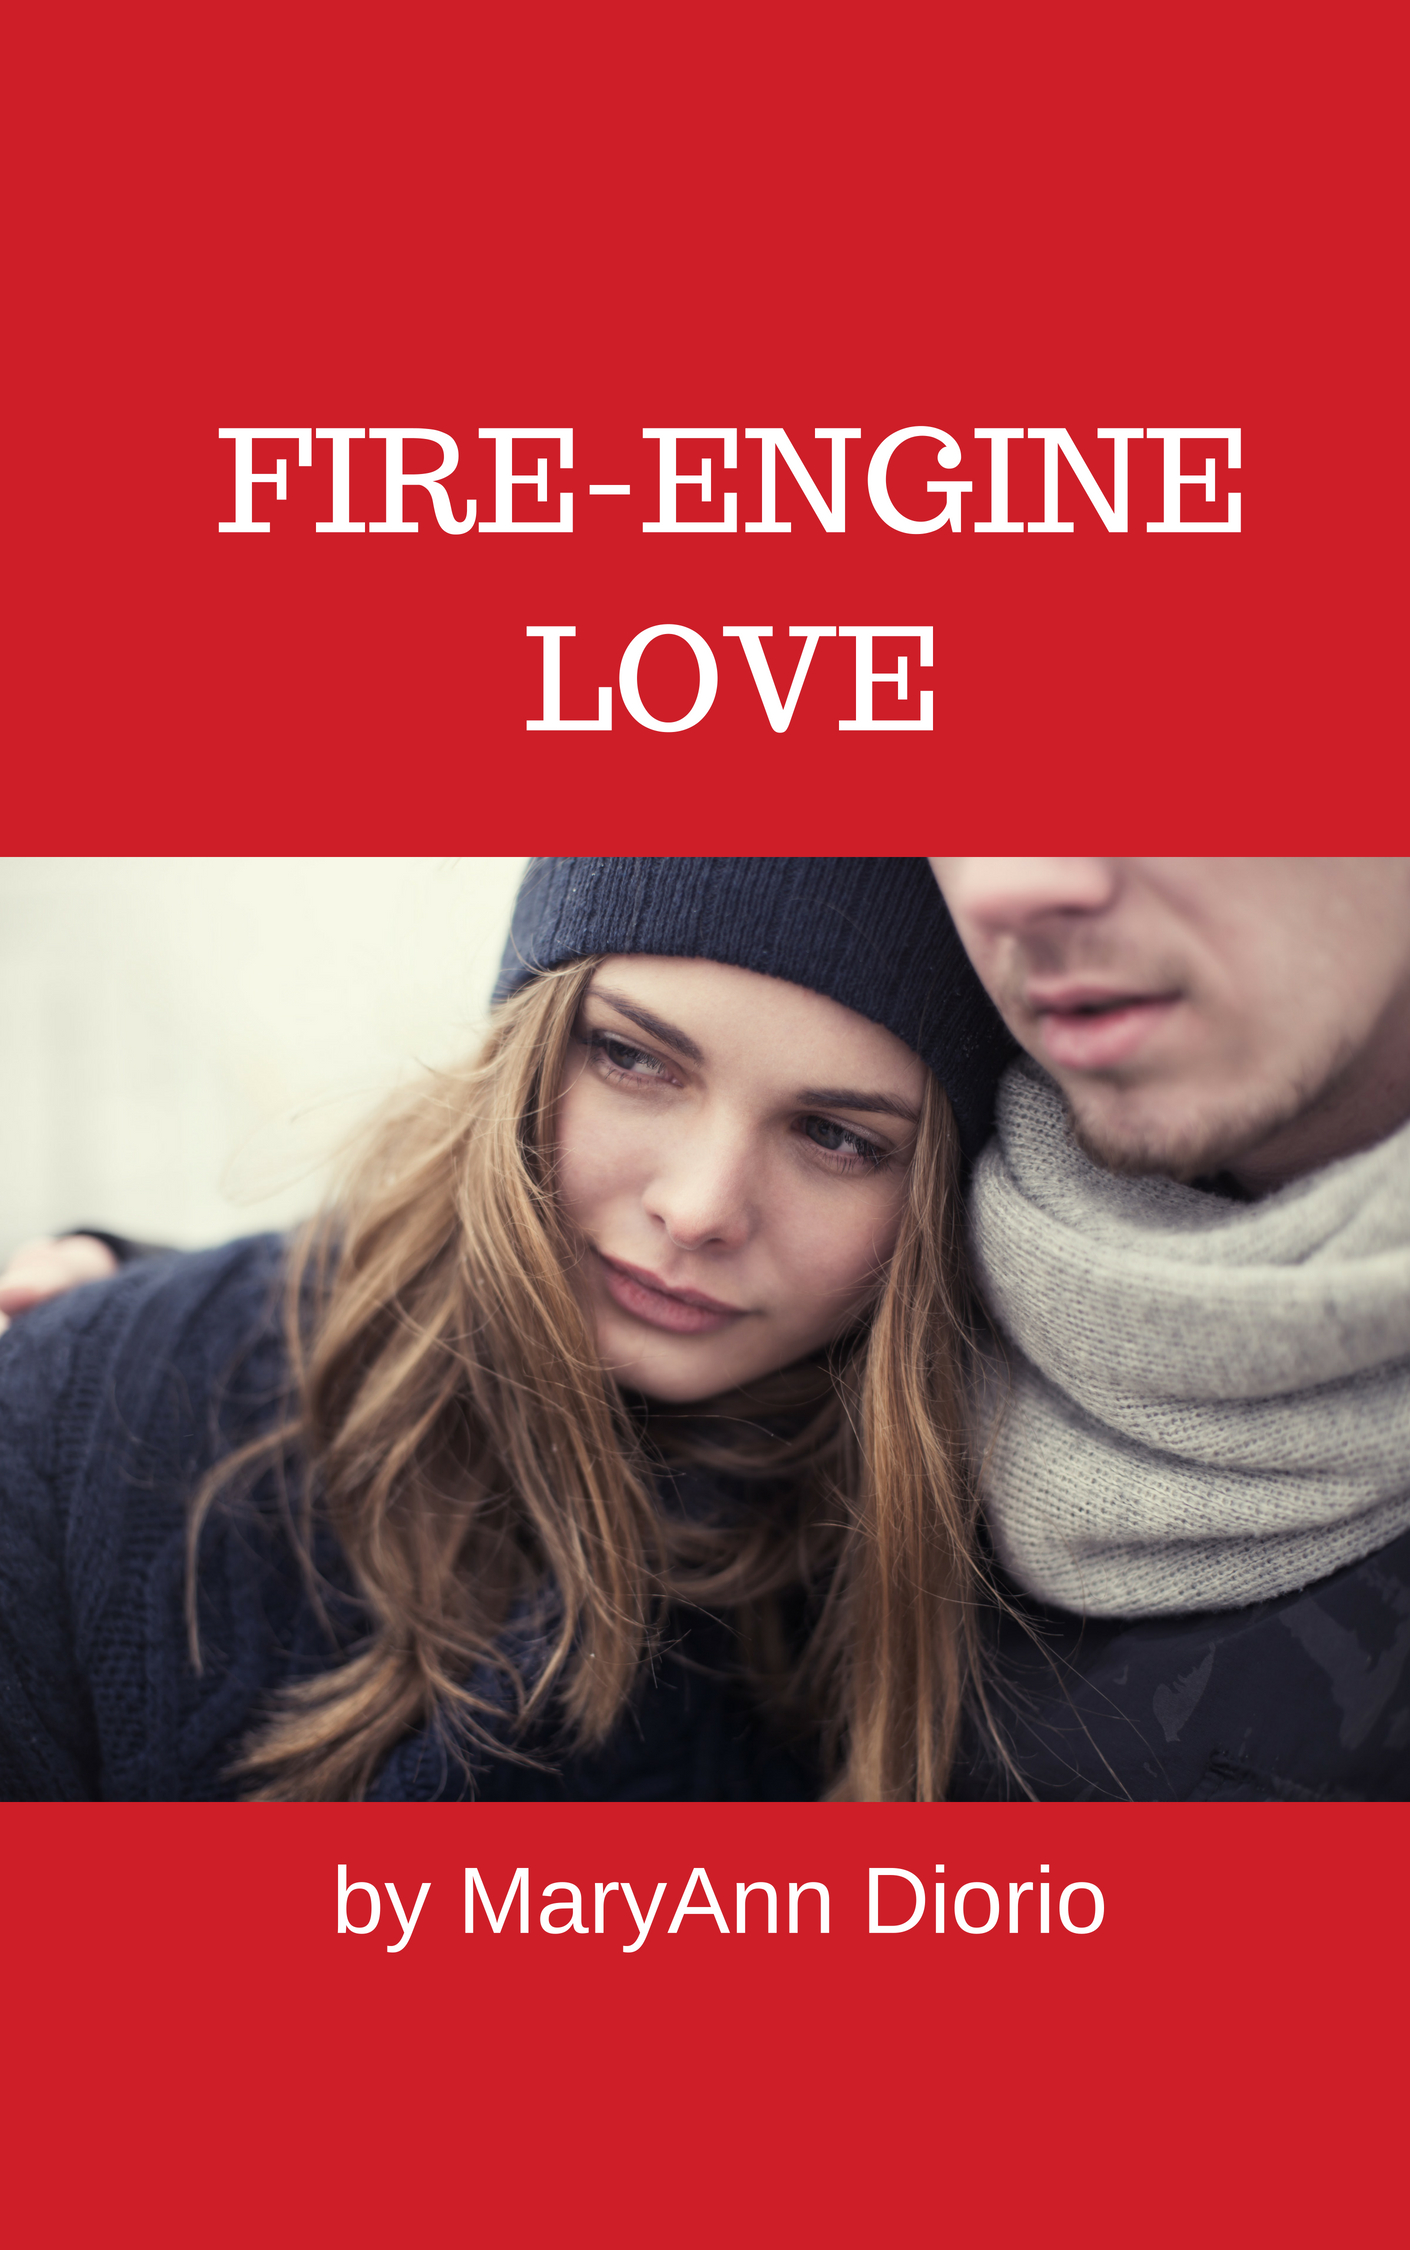 Fire-Engine Love: A Short Story